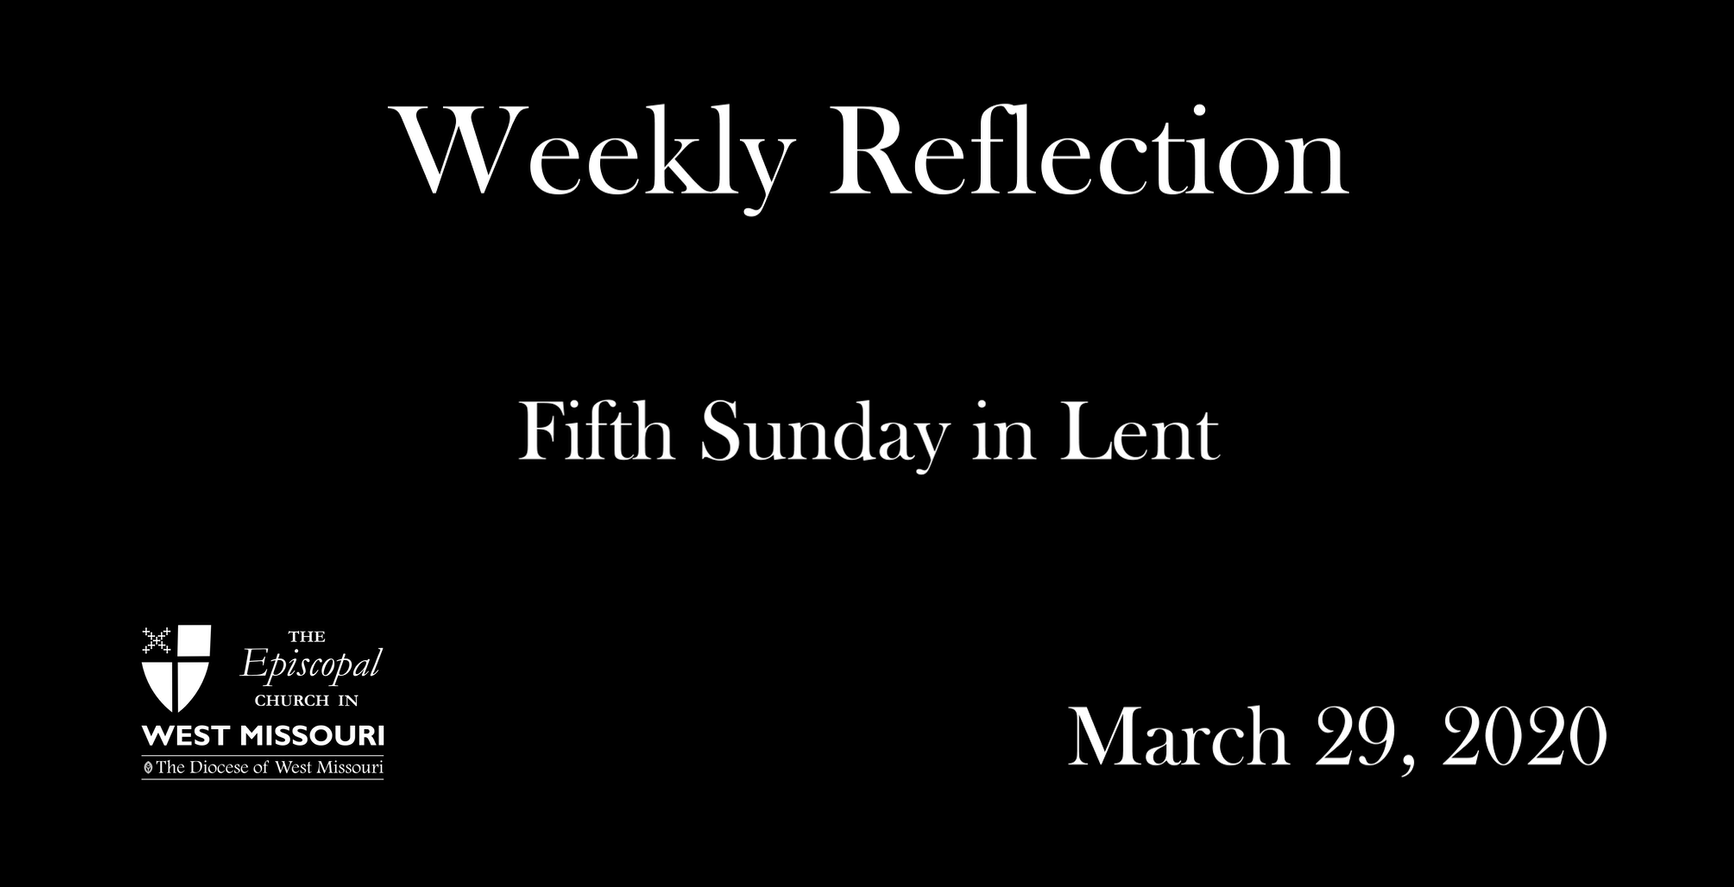 Weekly Reflection – Fifth Sunday in Lent